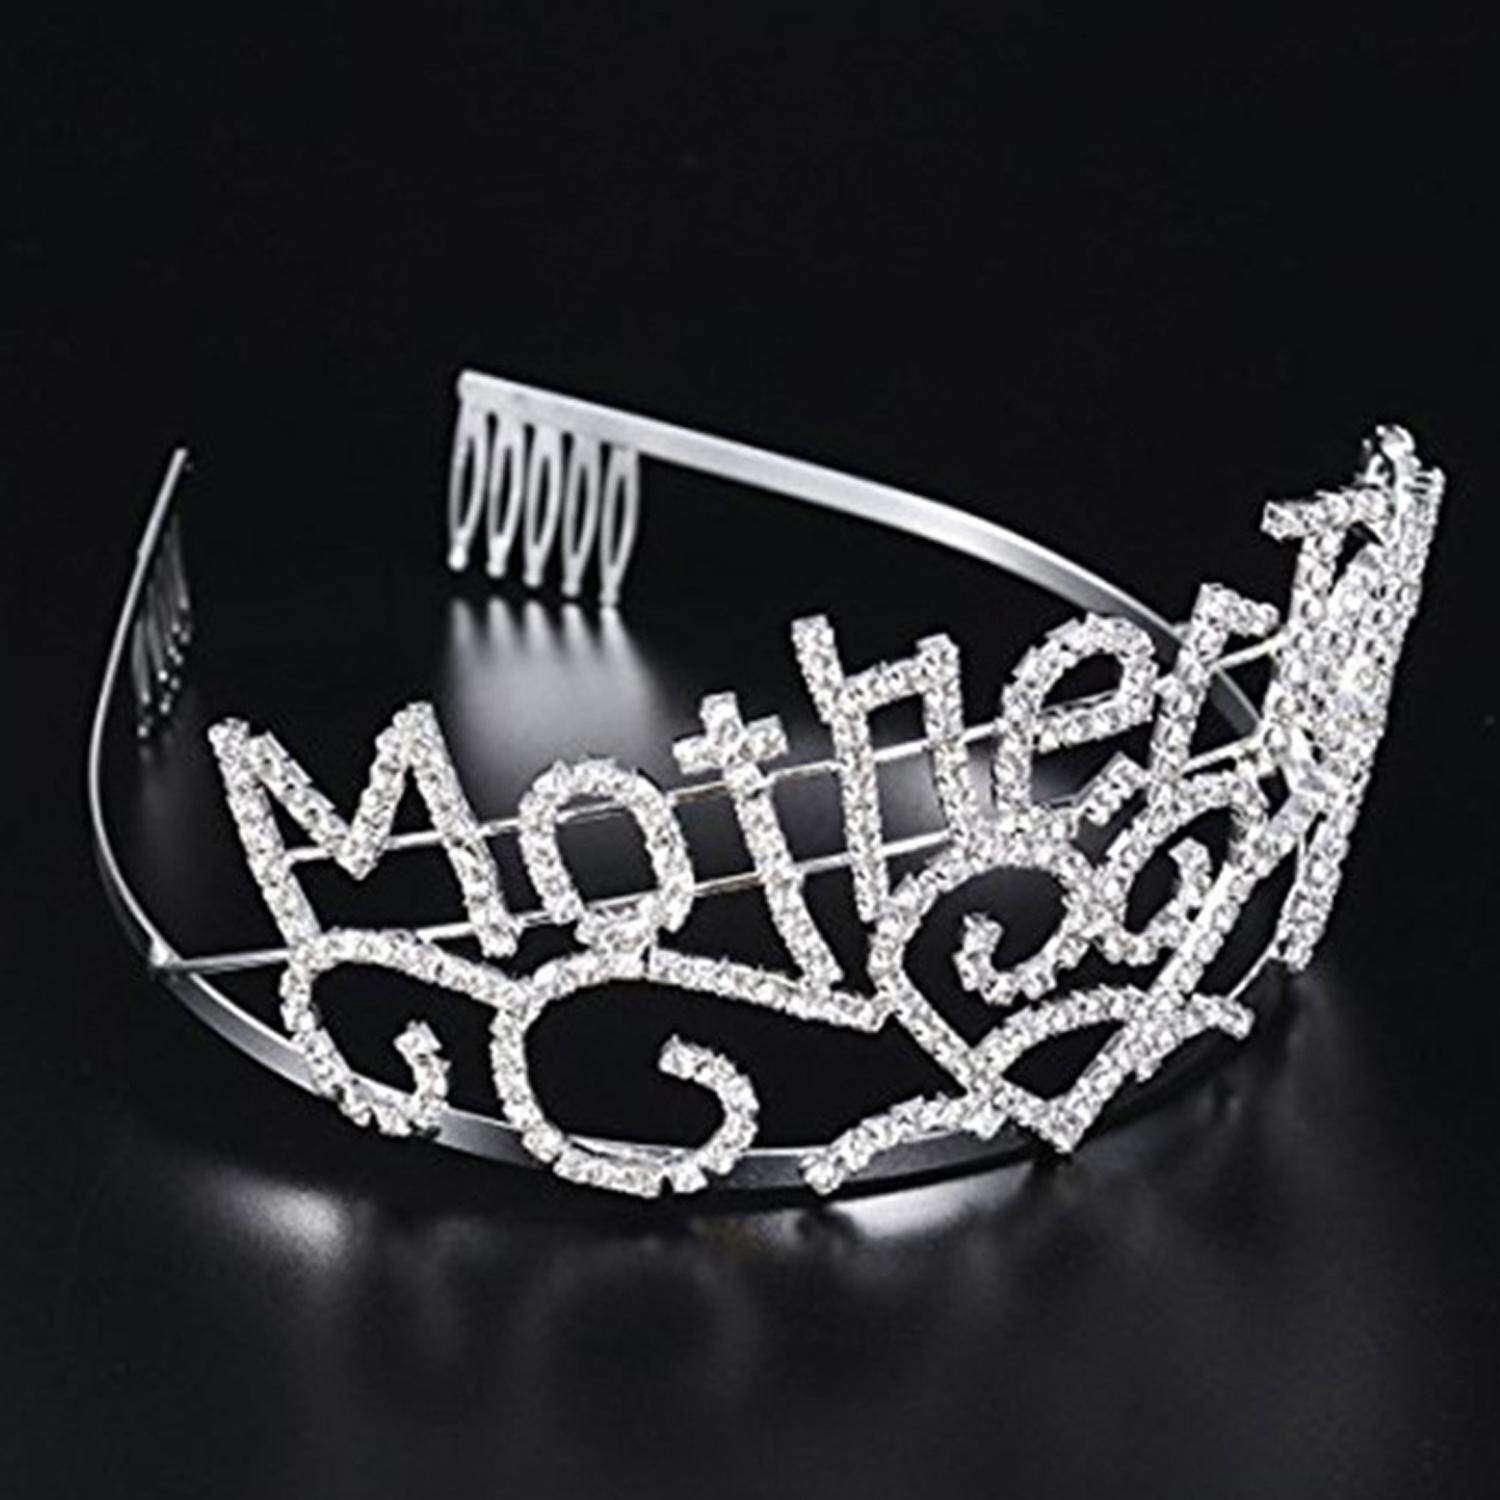 Hình ảnh Metal Silver Mother To Be Tiara Hearts Crown with Sparkling Rhinestones for Baby Shower Future Expecting Mom Decorations Mother Day Gift - intl